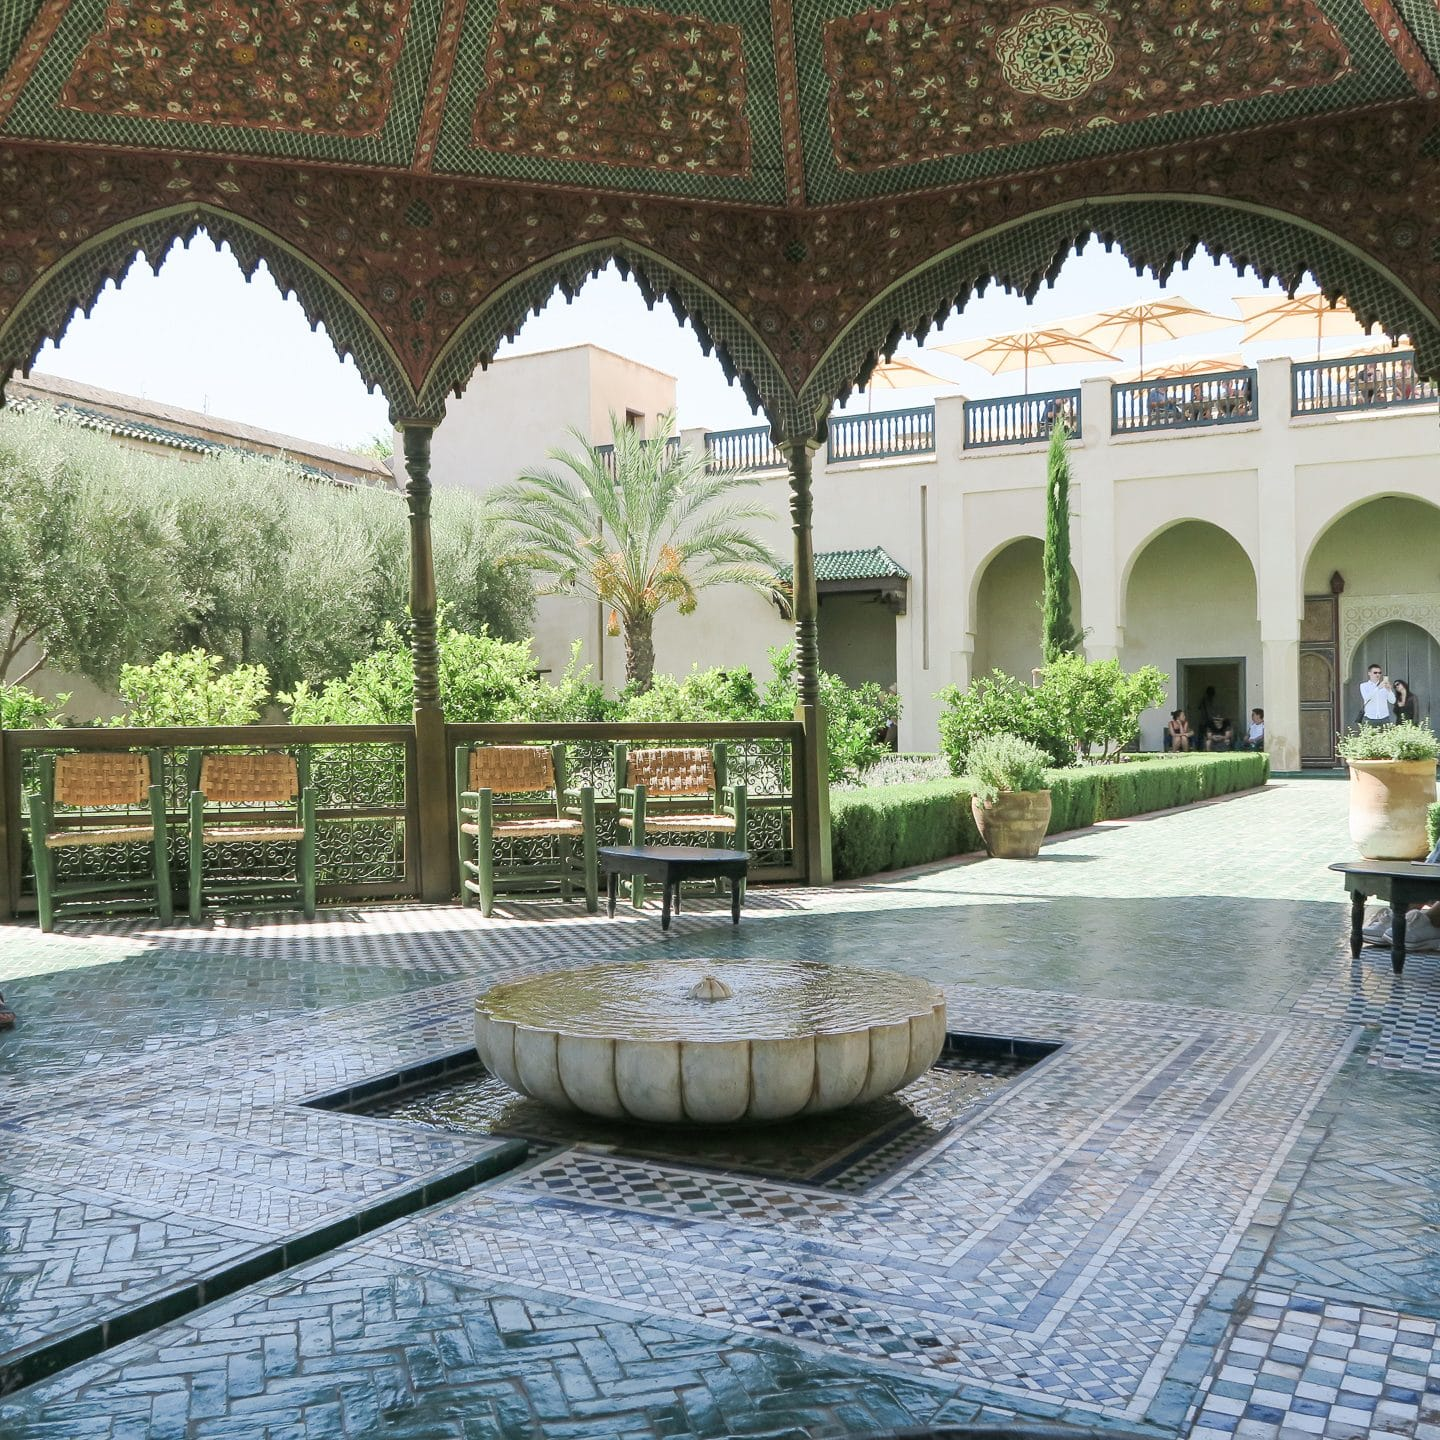 Finding the Jardin Secret in Marrakech | Curiously Conscious